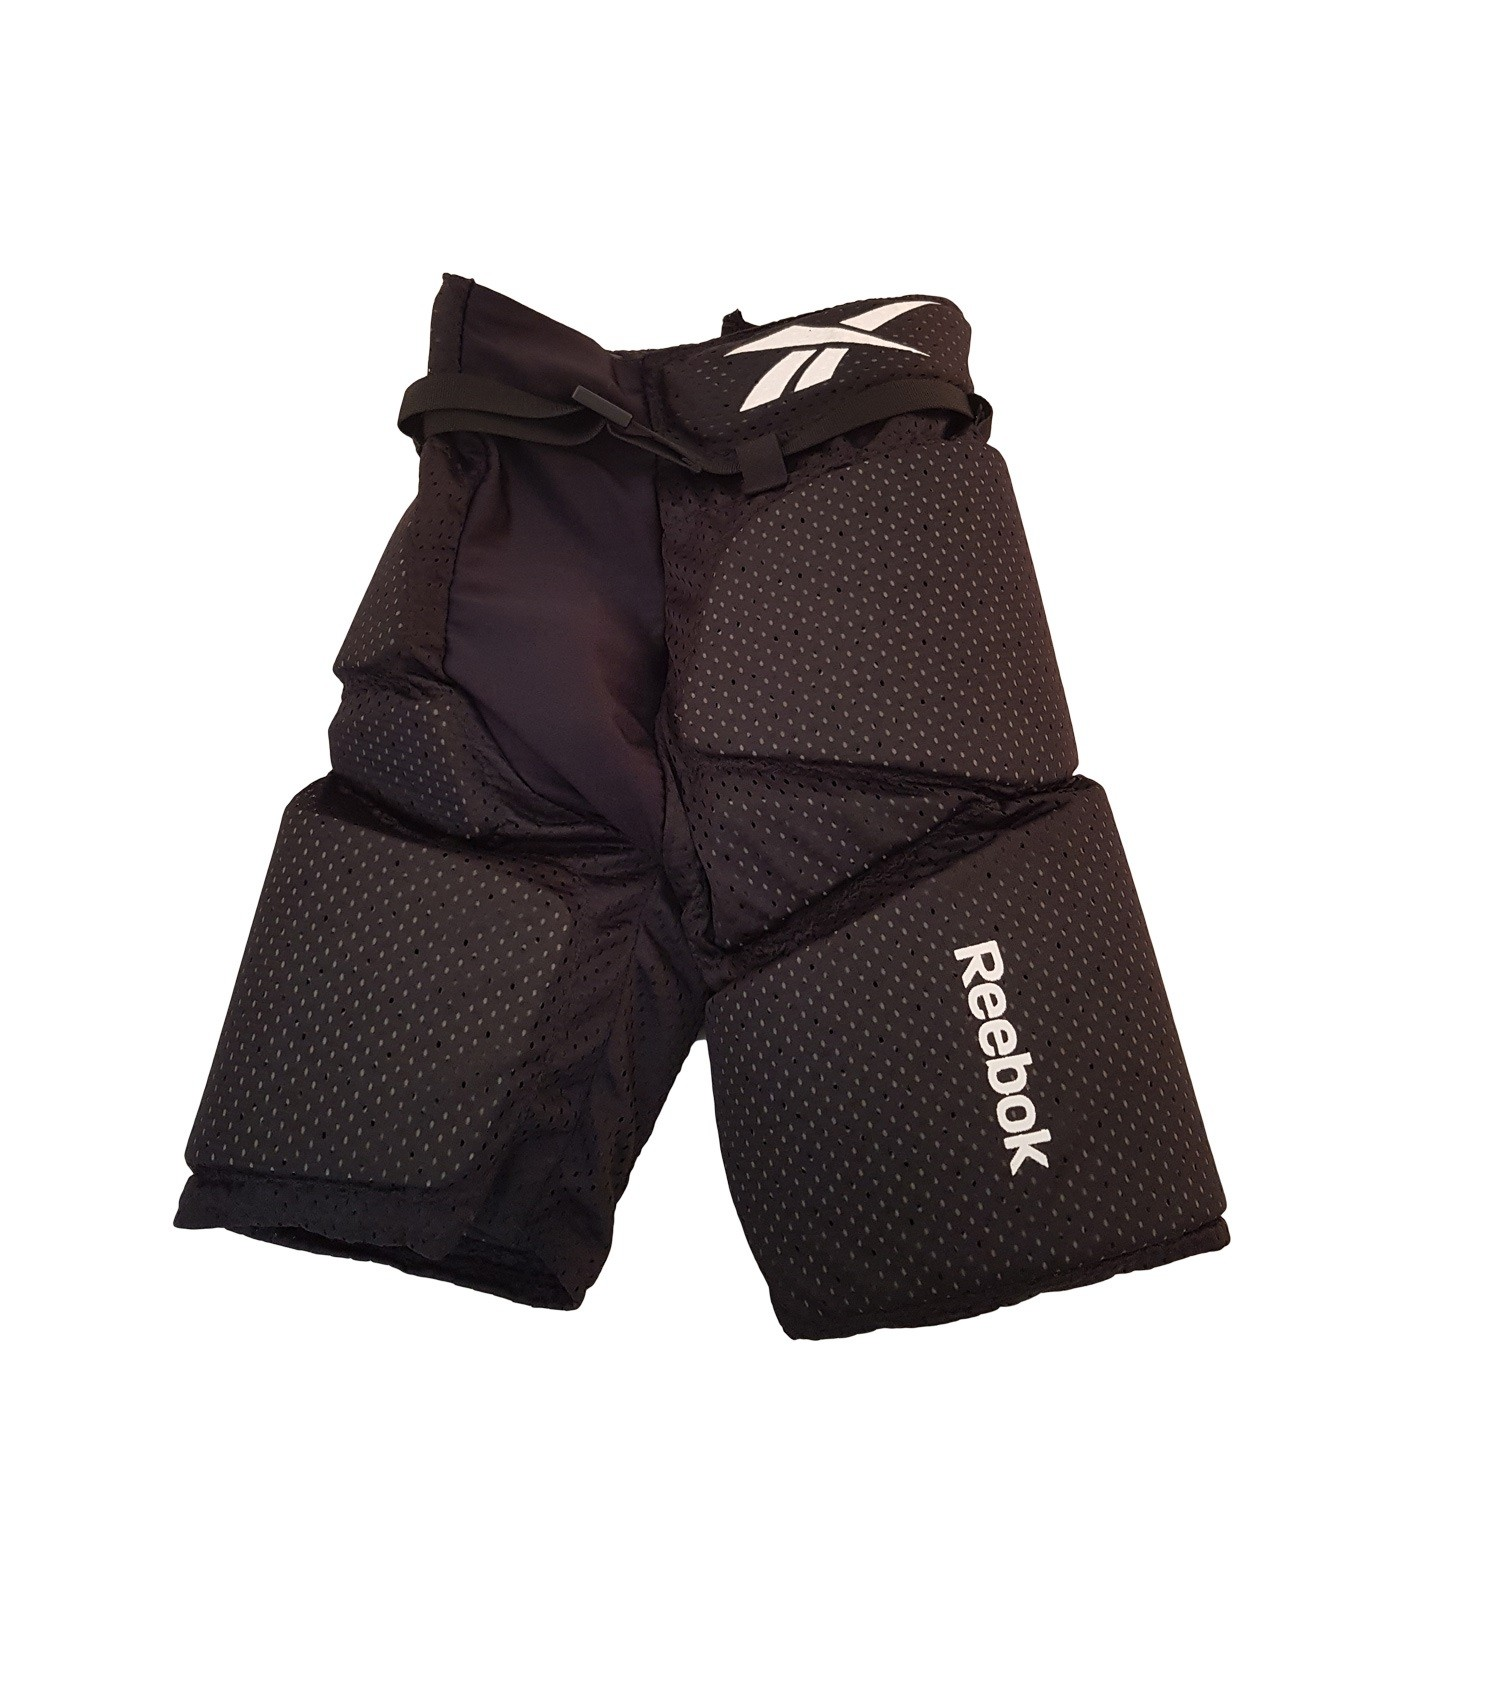 REEBOK 4K Junior Bandy Girdle